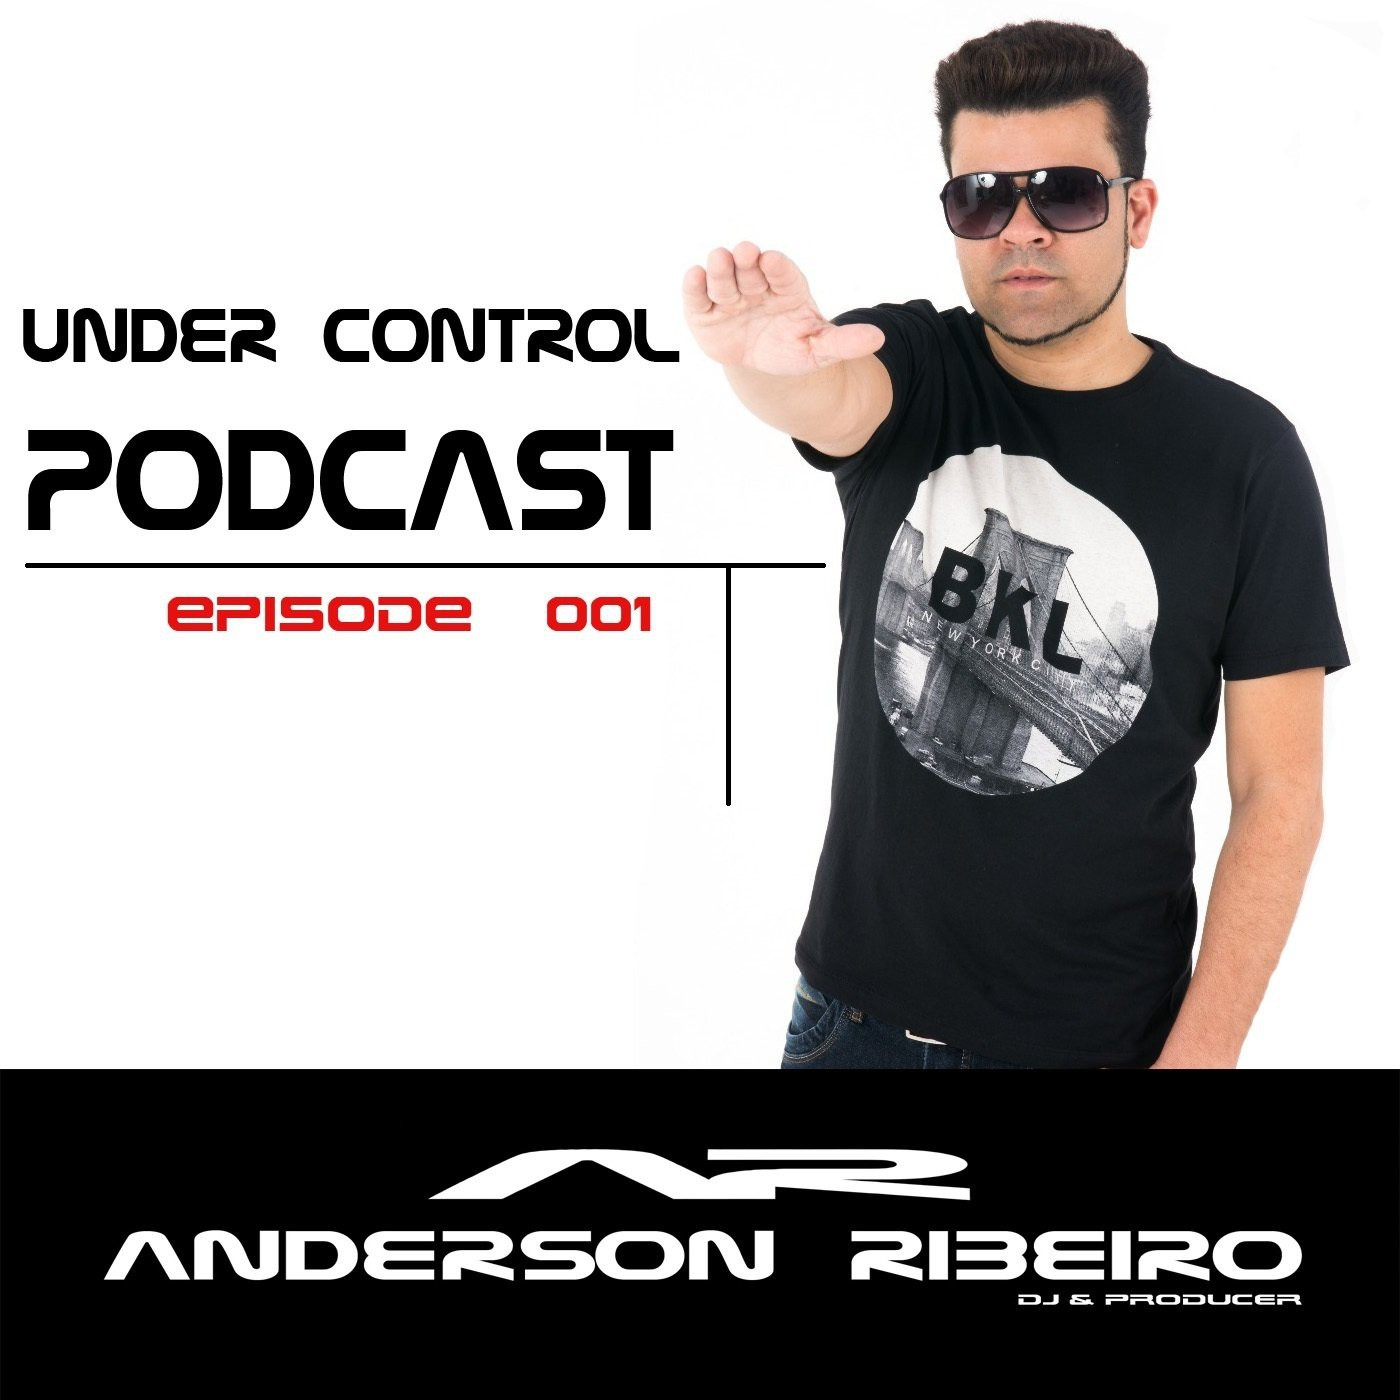 Under Control @ Podcast ( Episode 001 )by Anderson